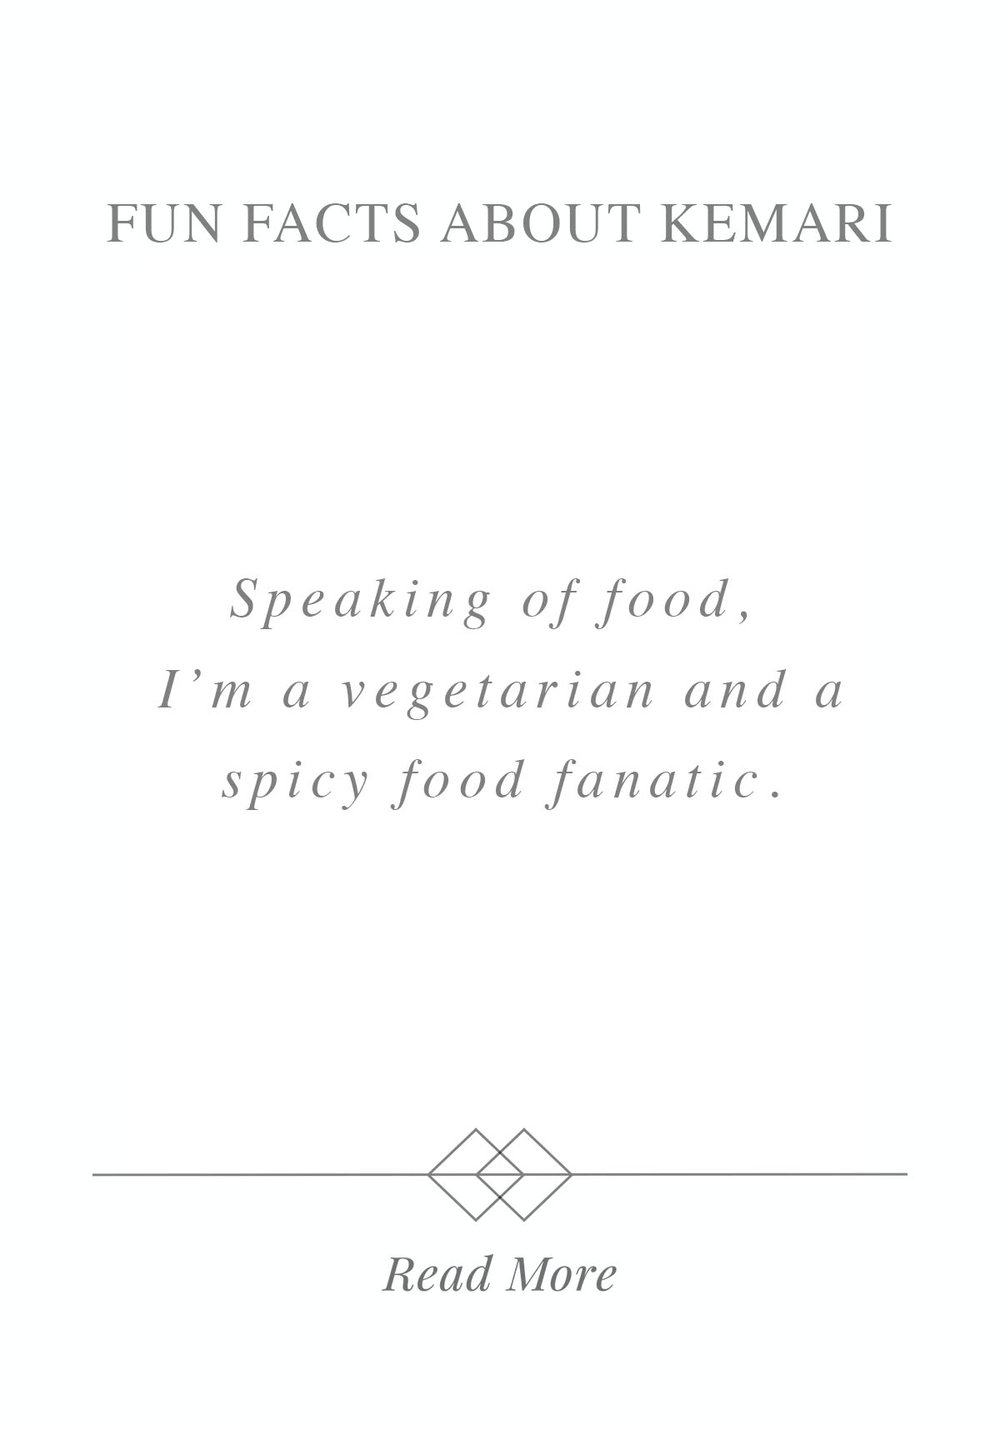 fun facts kemarifix1.jpg